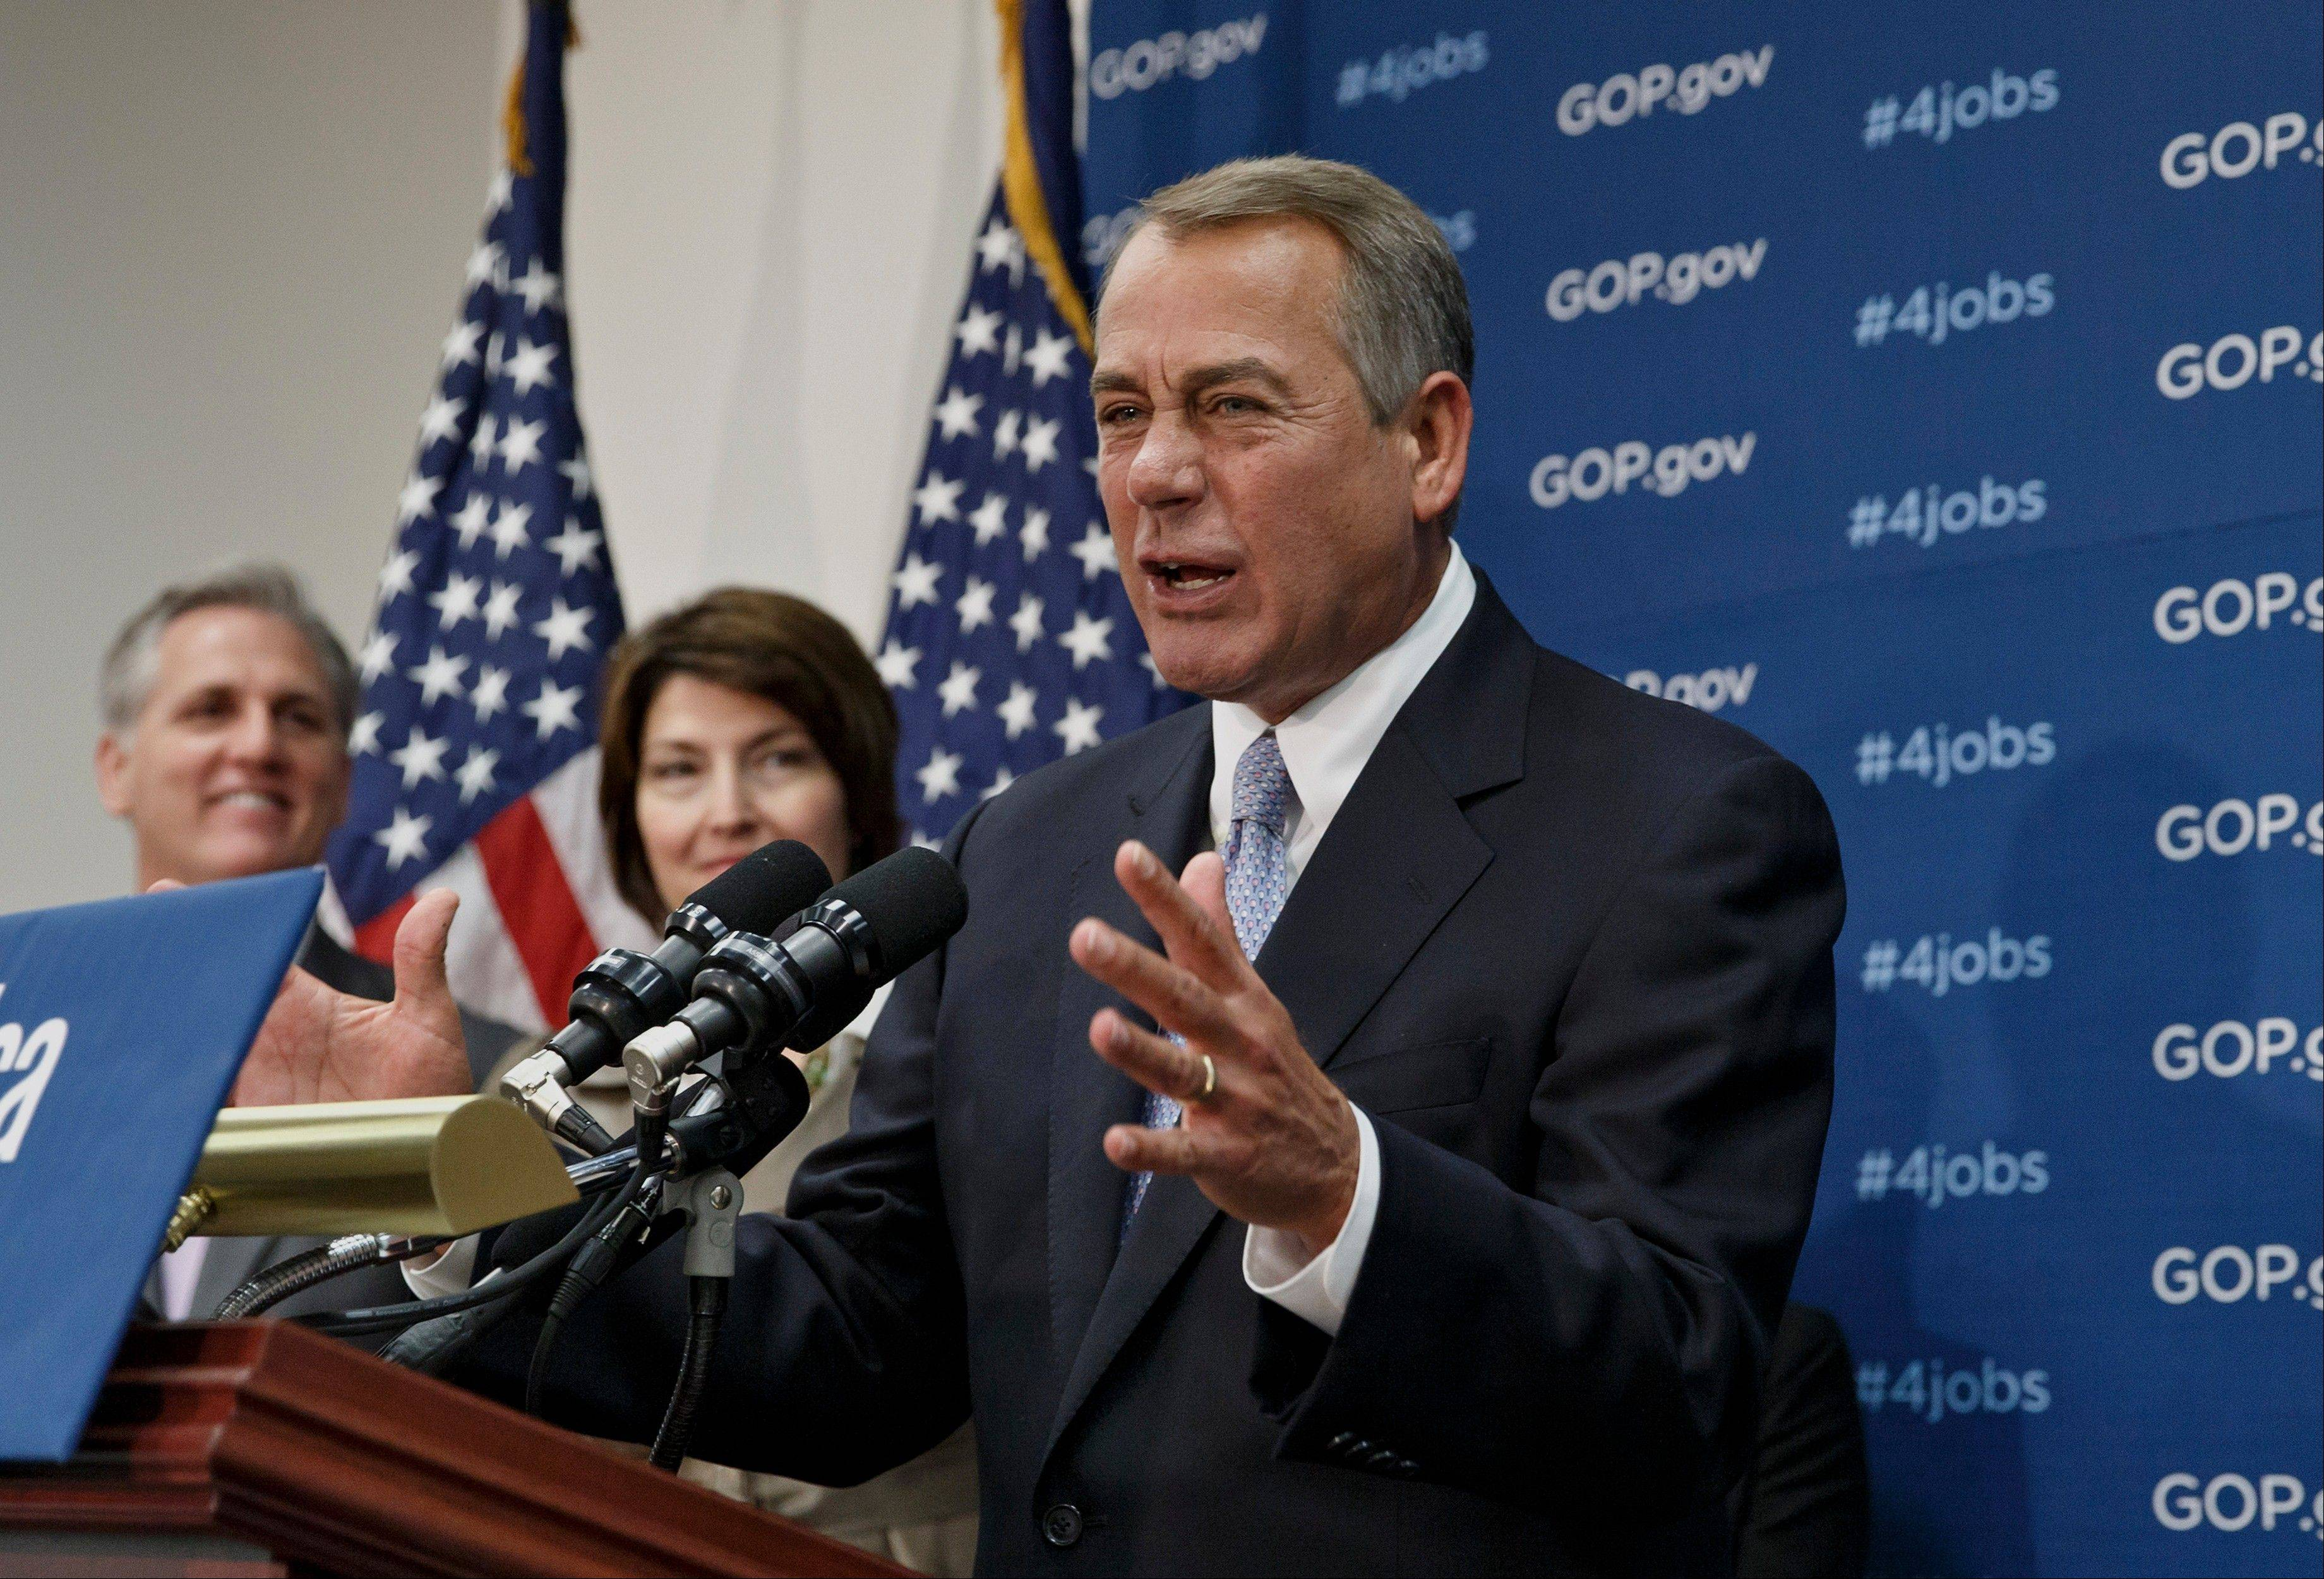 Several million people will reduce their hours on the job or leave the workforce entirely because of incentives built into President Barack Obama's health care overhaul, the Congressional Budget Office said Tuesday. House Speaker John Boehner of Ohio, right, is seen here, accompanied by House Majority Whip Kevin McCarthy of Calif., left, and Rep. Cathy McMorris Rodgers of Washington.